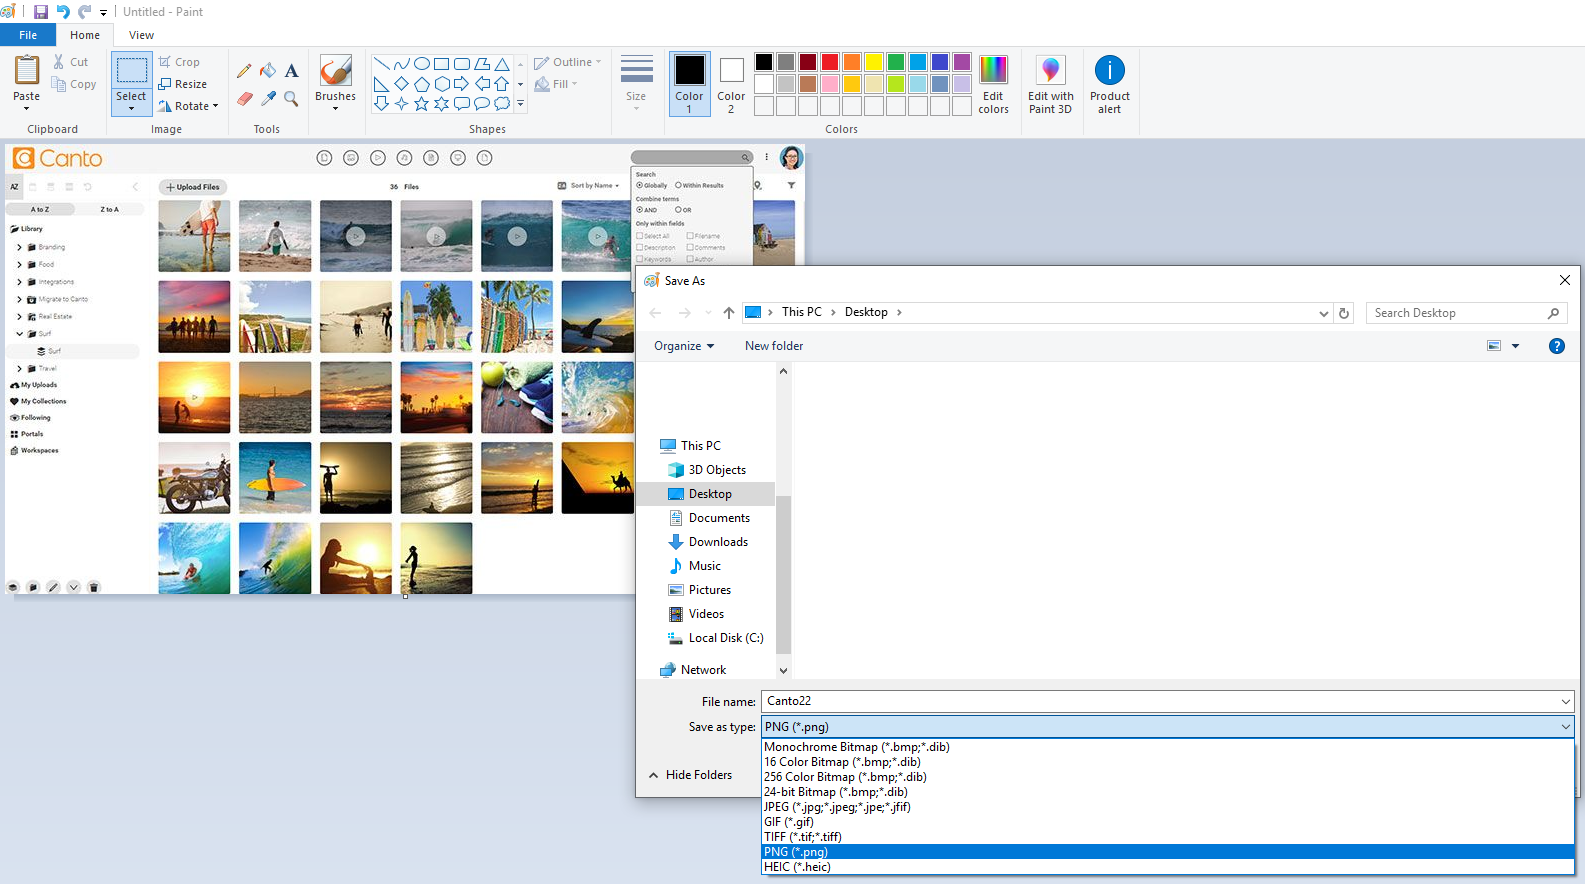 A screenshot of the Paint app making an image conversion.